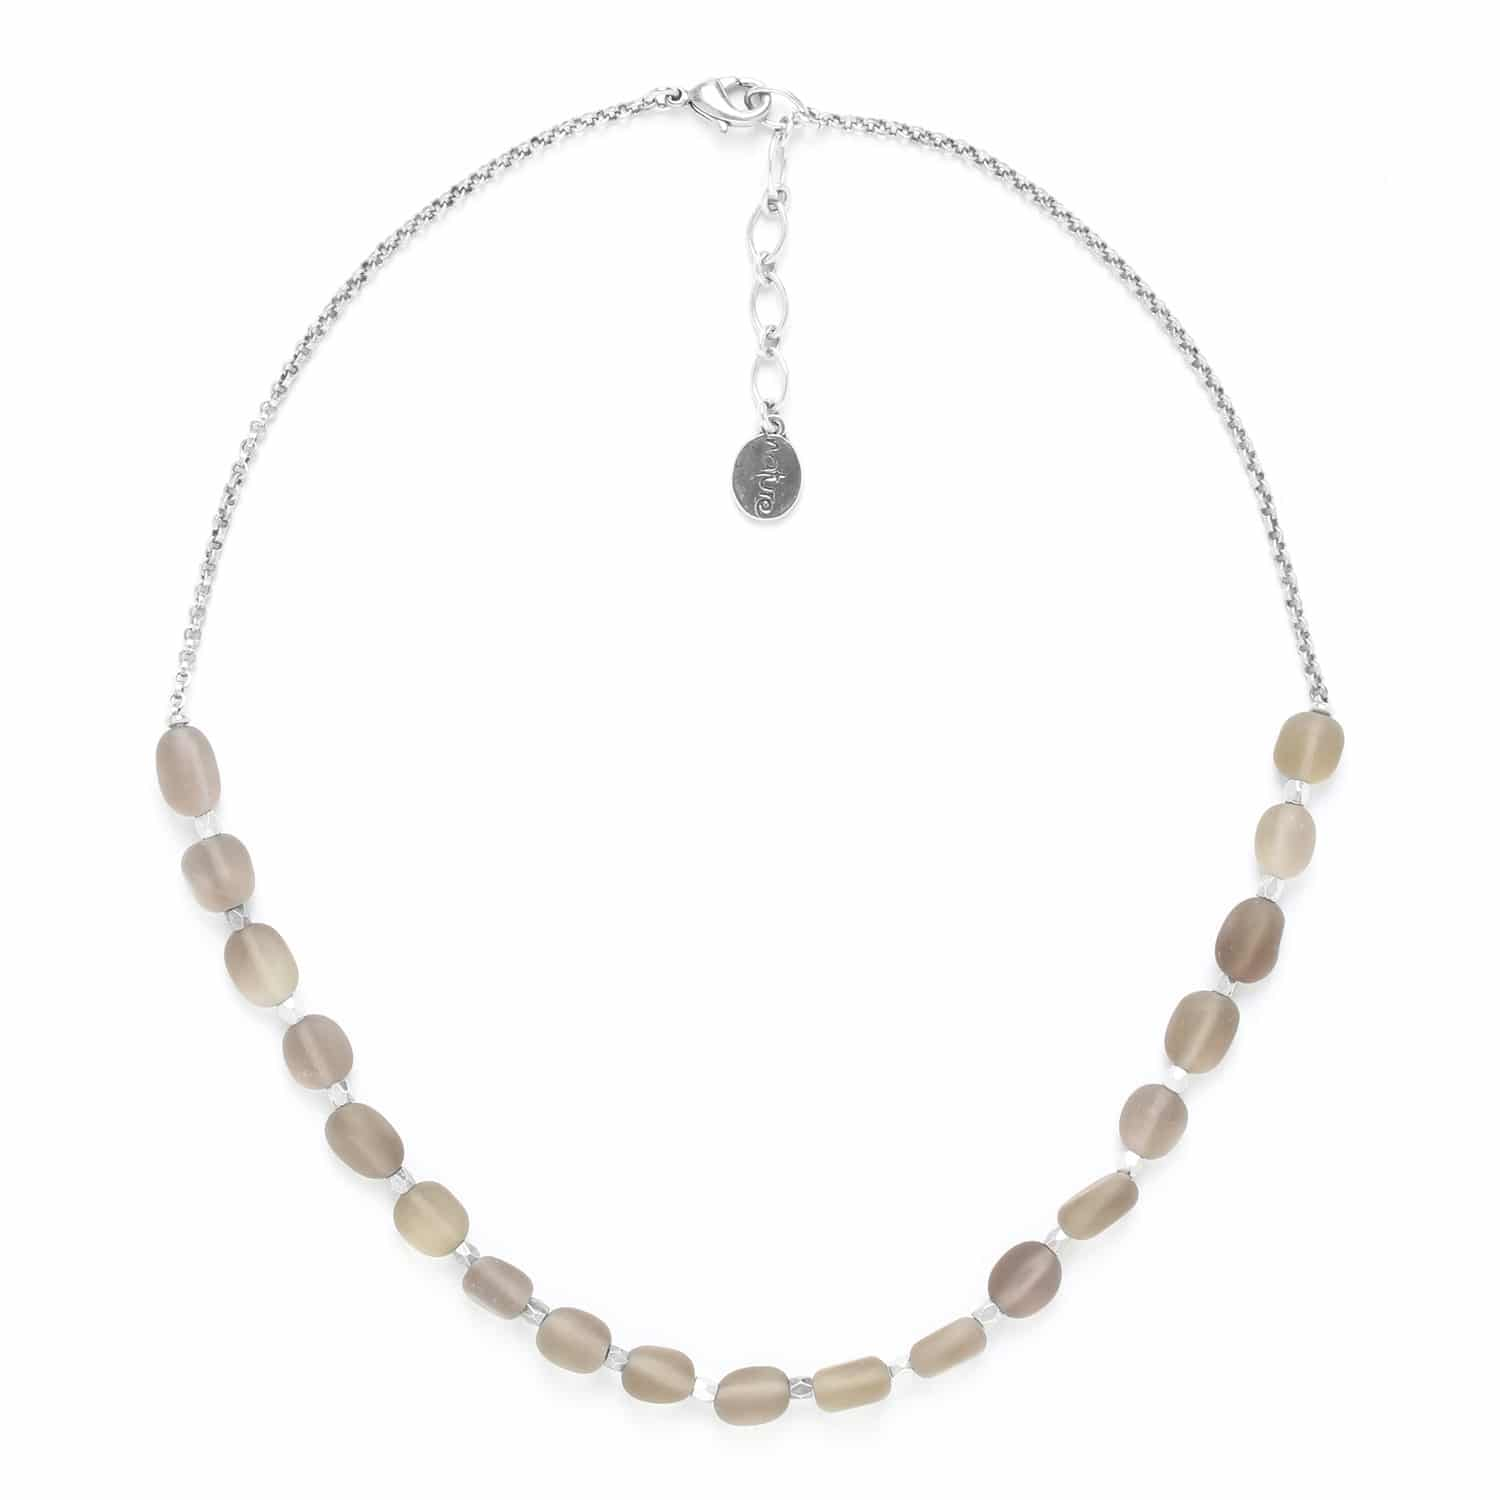 OMBRE ET LUMIERE  smoky quartz necklace with chain